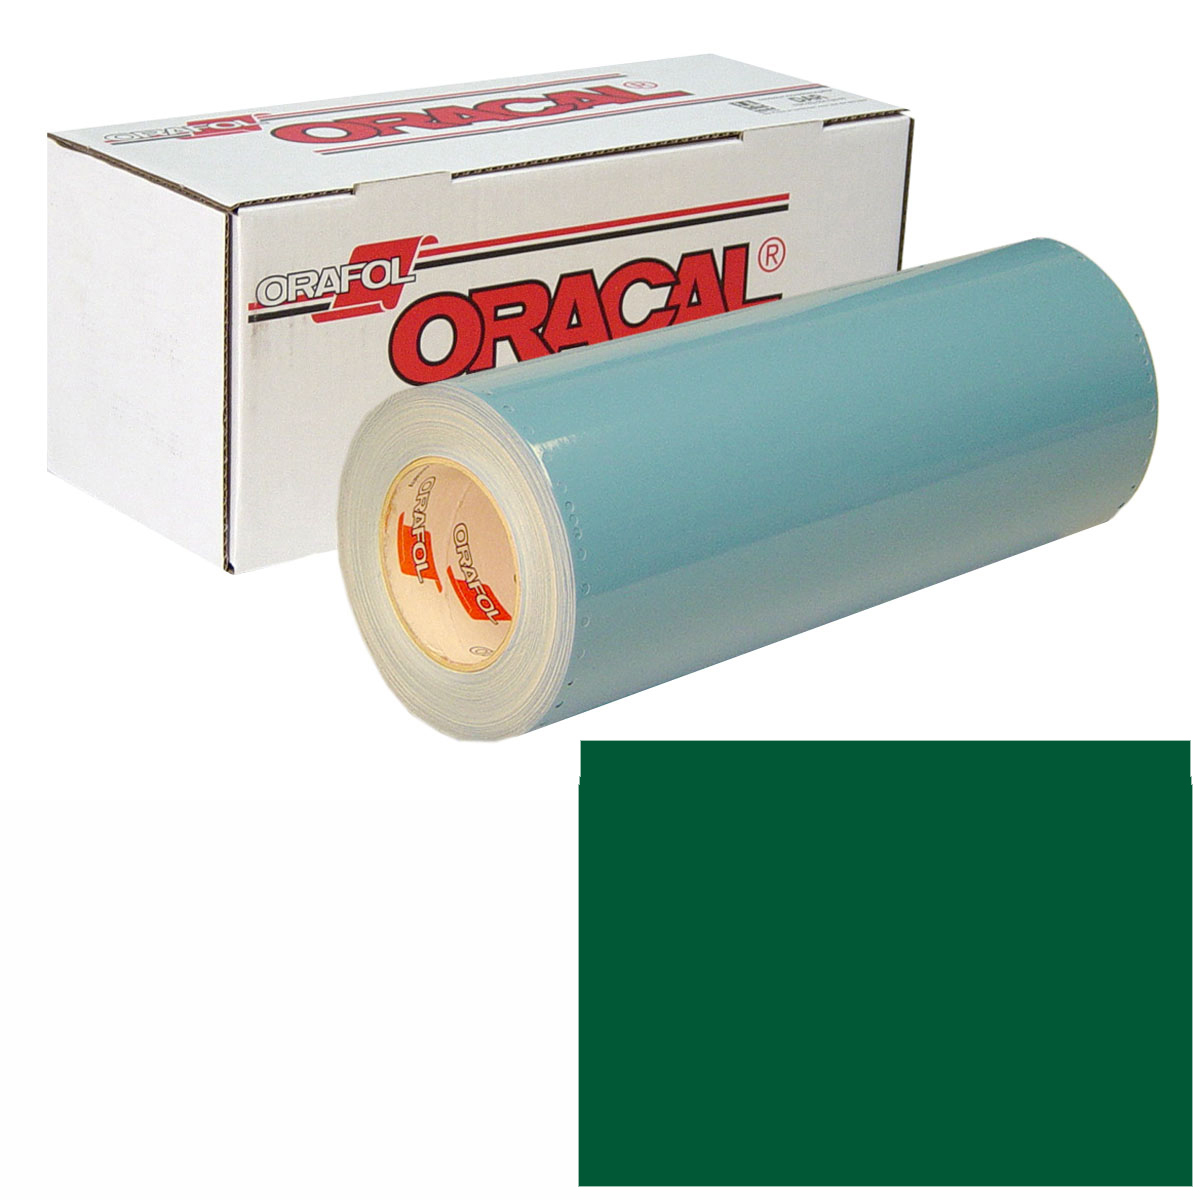 ORACAL 751 Unp 24in X 50yd 060 Dark Green